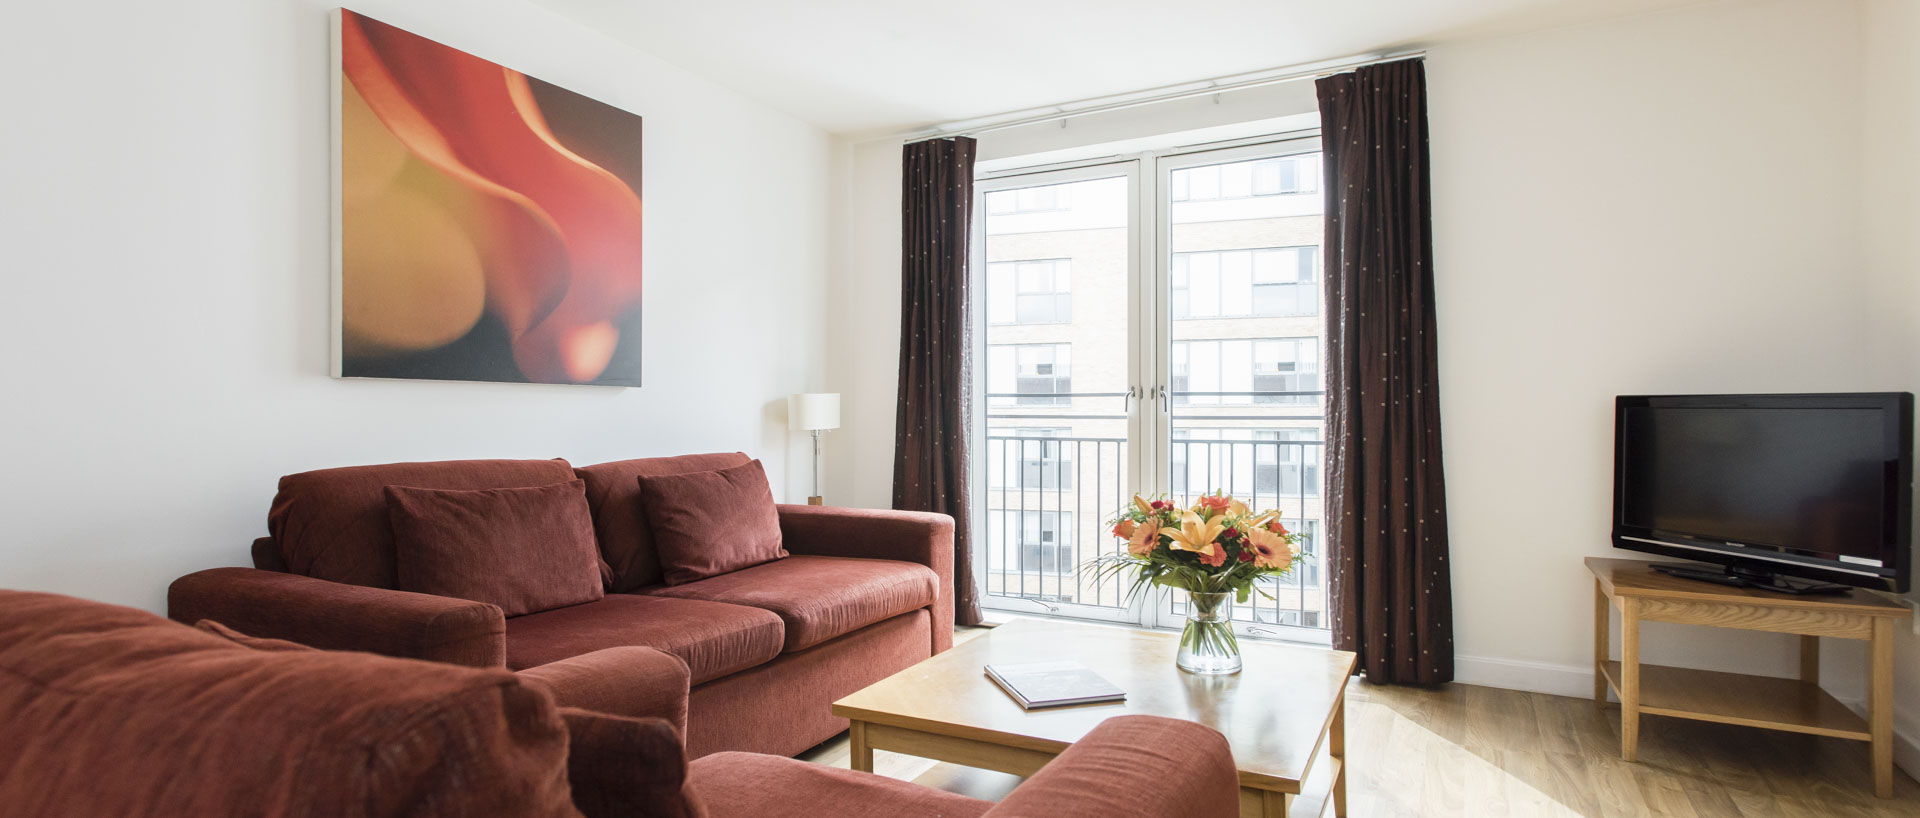 The lounge area in PREMIER SUITES Birmingham family serviced apartment